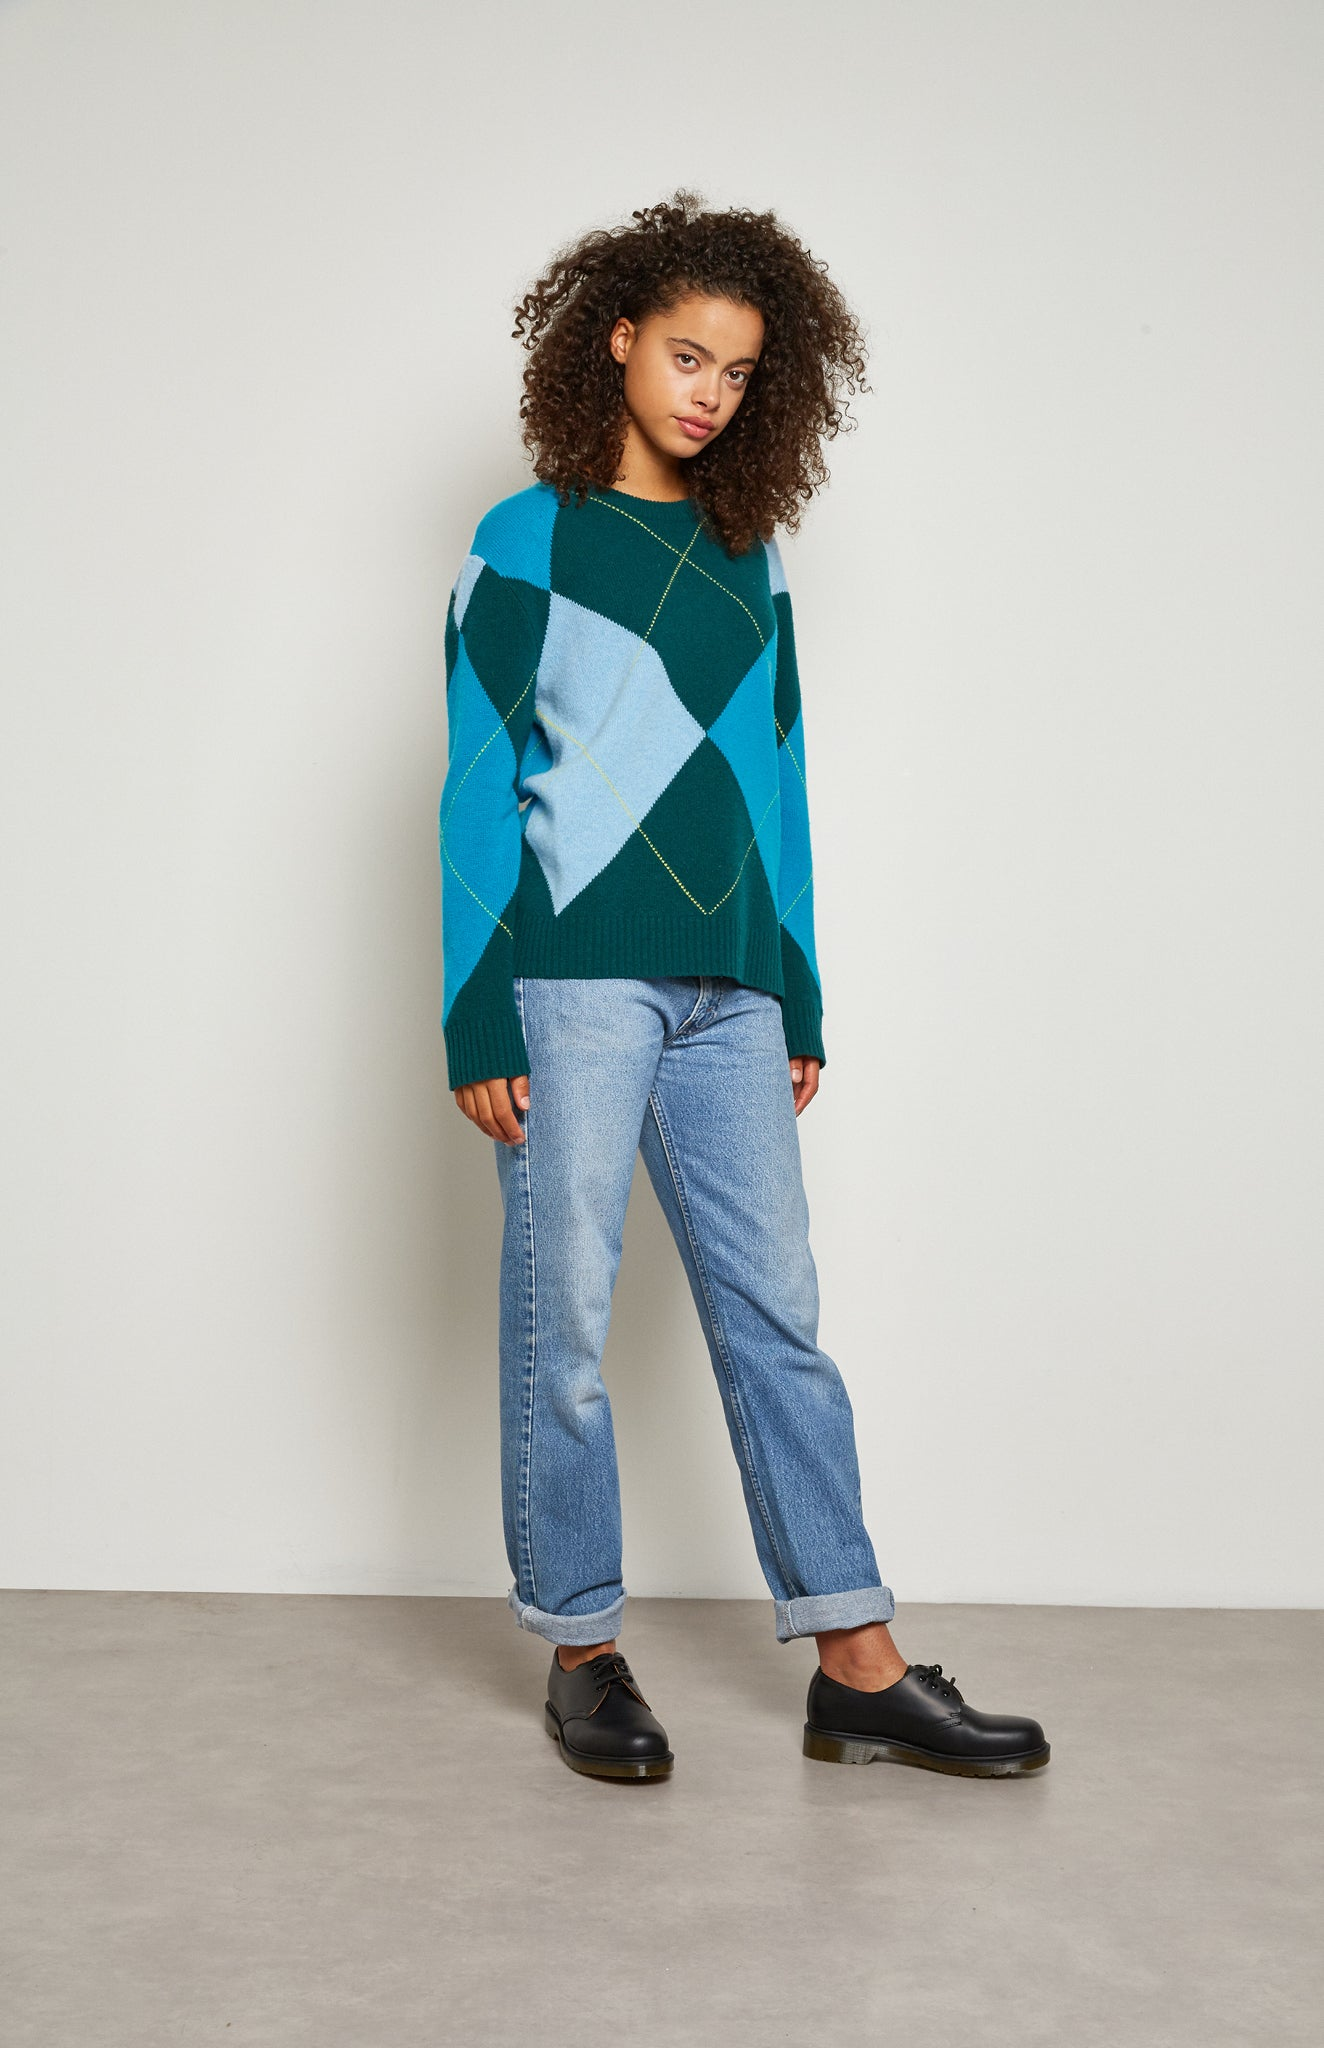 Pringle Reissued Unisex Grand Argyle Jumper In Green on female model